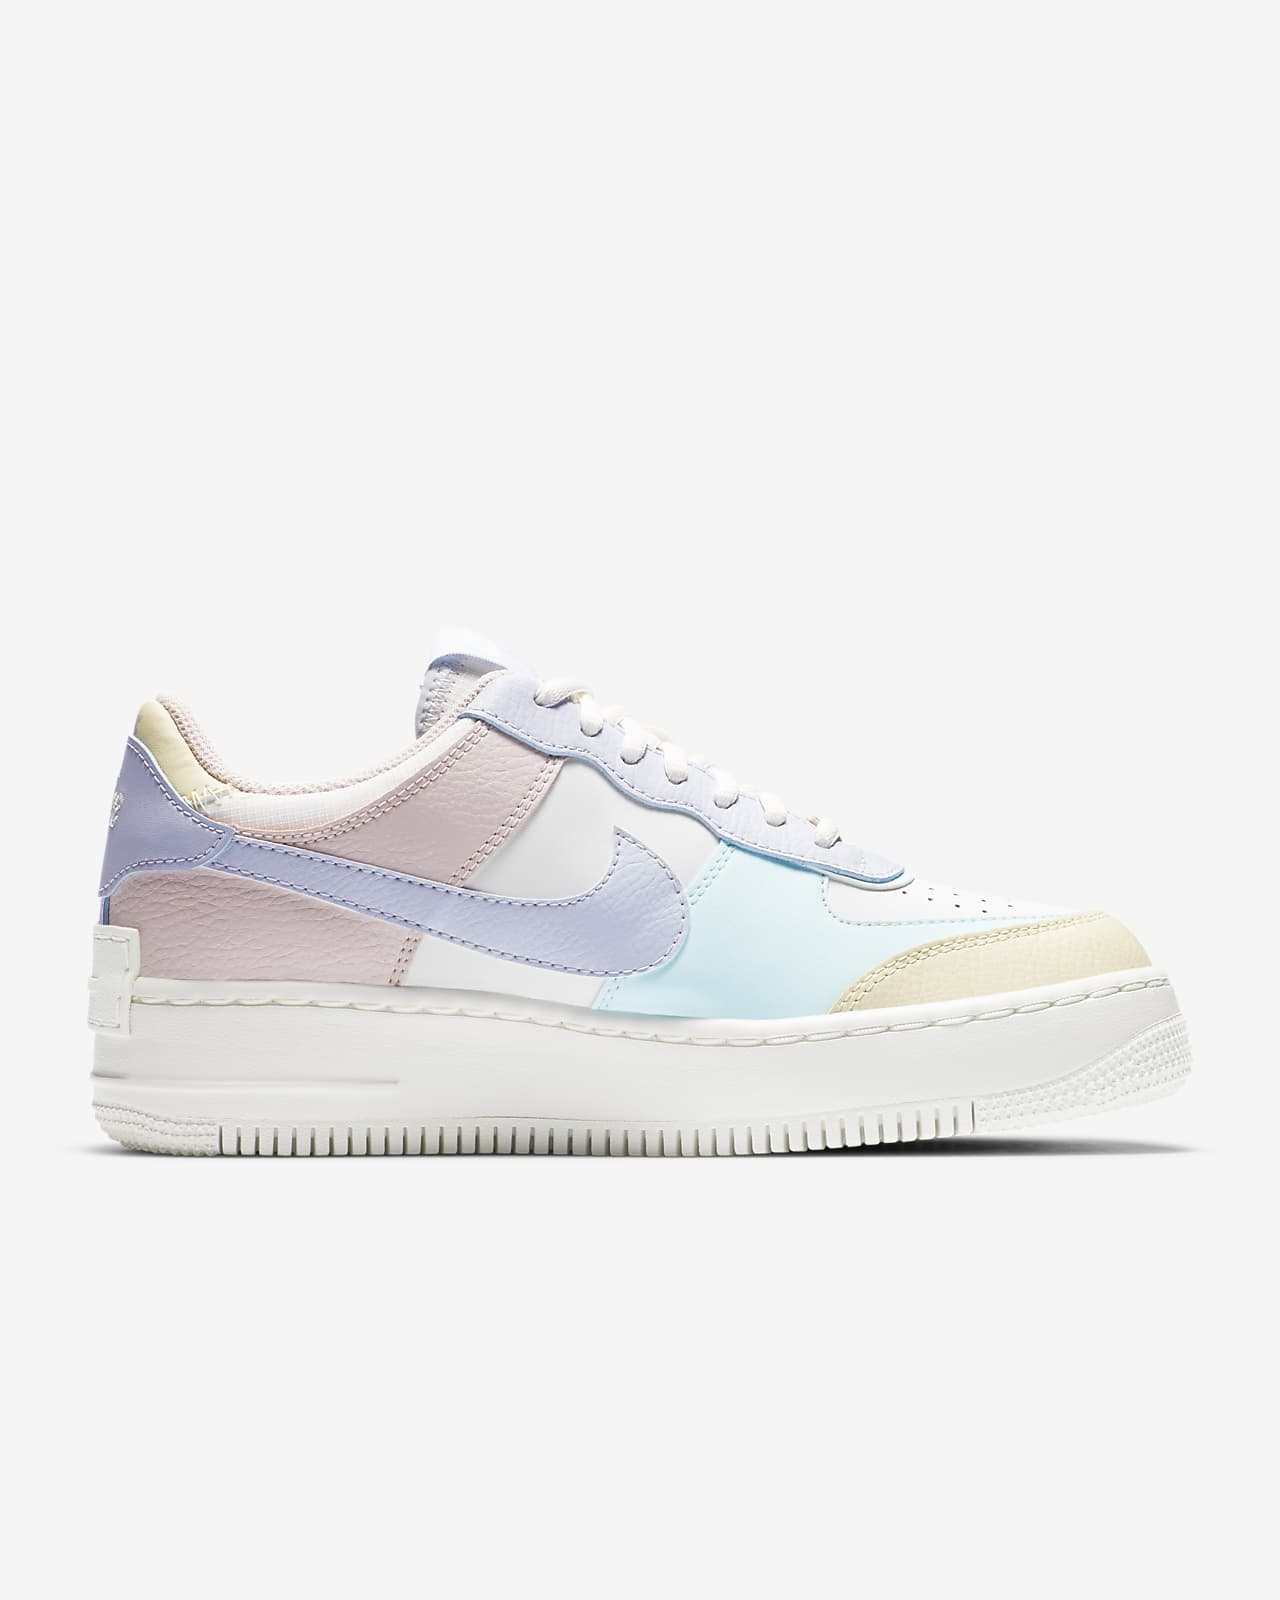 Nike Air Force 1 Shadow Women S Shoe Nike Com Nike gives its iconic white on white air force 1 a reworking, doubling up on key upper panels and sitting it all on a slightly oversized sole unit. nike air force 1 shadow women s shoe